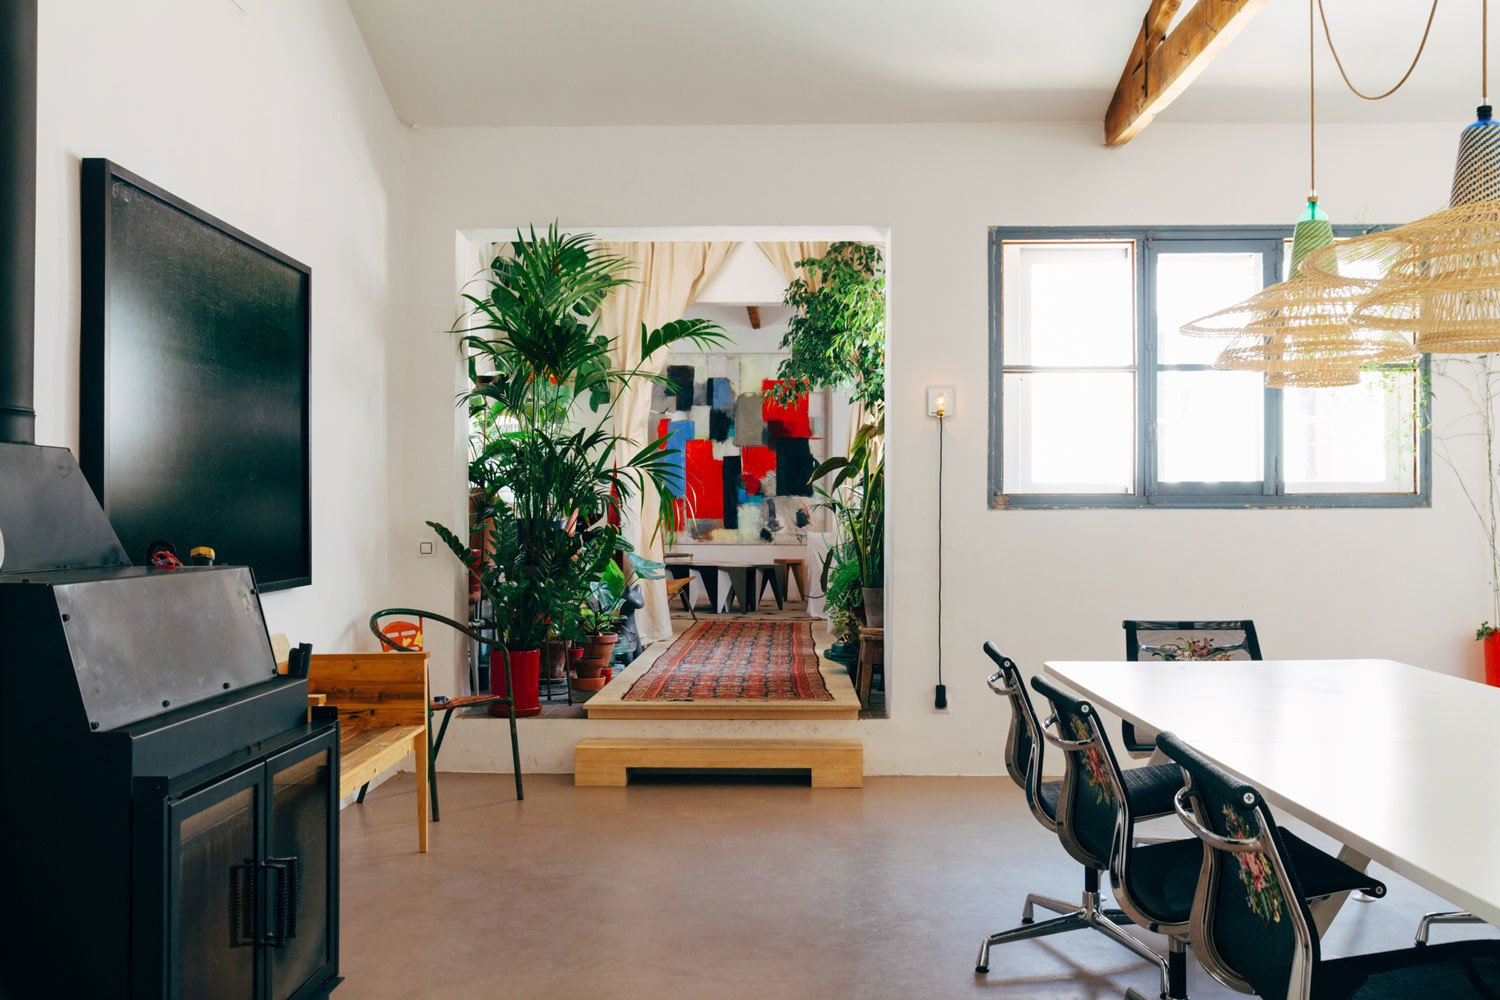 """""""The three things that come with me everywhere are my books, my music and my plants,"""" Catalán de Ocón says.  Search """"madrid couple remake apartment one their childhood buildings"""" from Tour the Cozy and Quirky Madrid Apartment of Product Designer Alvaro Catalan de Ocon"""